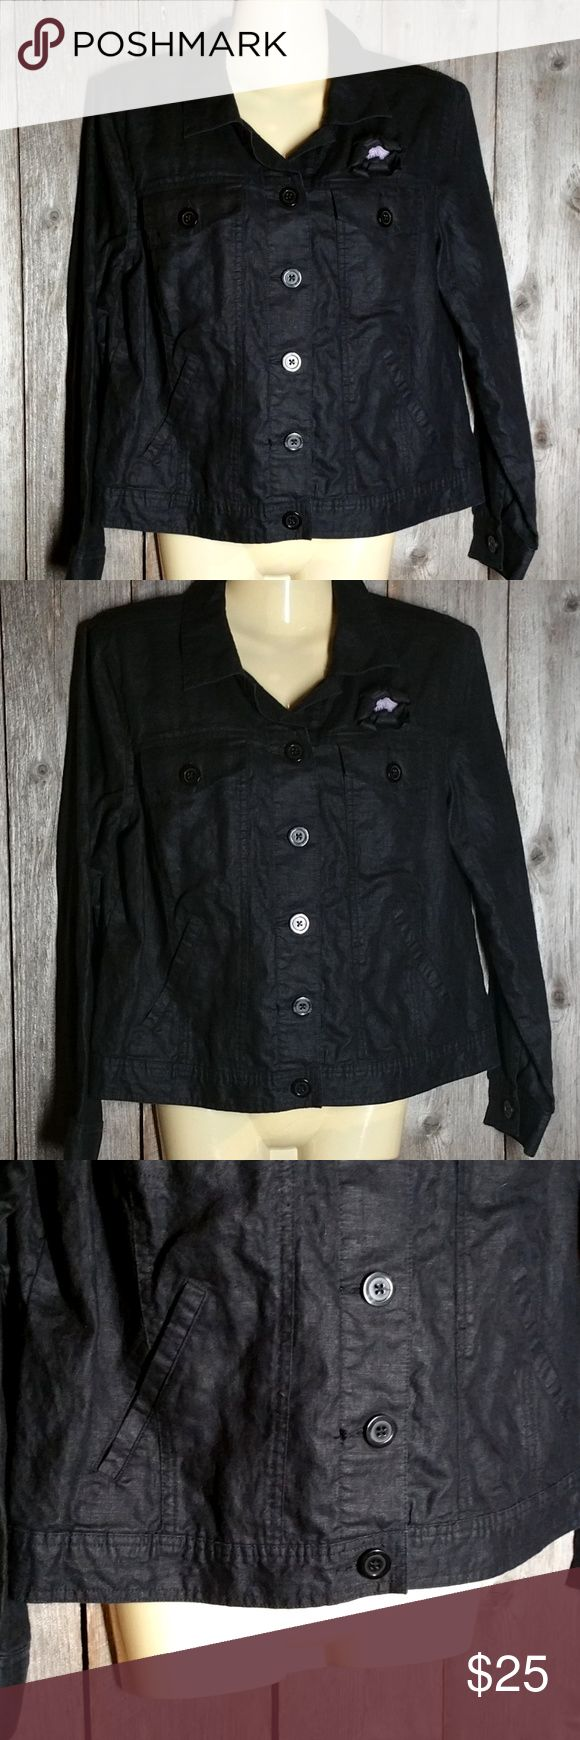 "Linden Hill S Jacket Blazer Top Black Linen Linden Hill S Jacket Blazer Top Black Linen Button Front With Flower Rosette Approx bust 39"" Length from top of shoulder 21"" The flower is a pin so you can remove it Gently used condition Linen Unlined Button front Lightweight Linden Hill Tops Button Down Shirts"